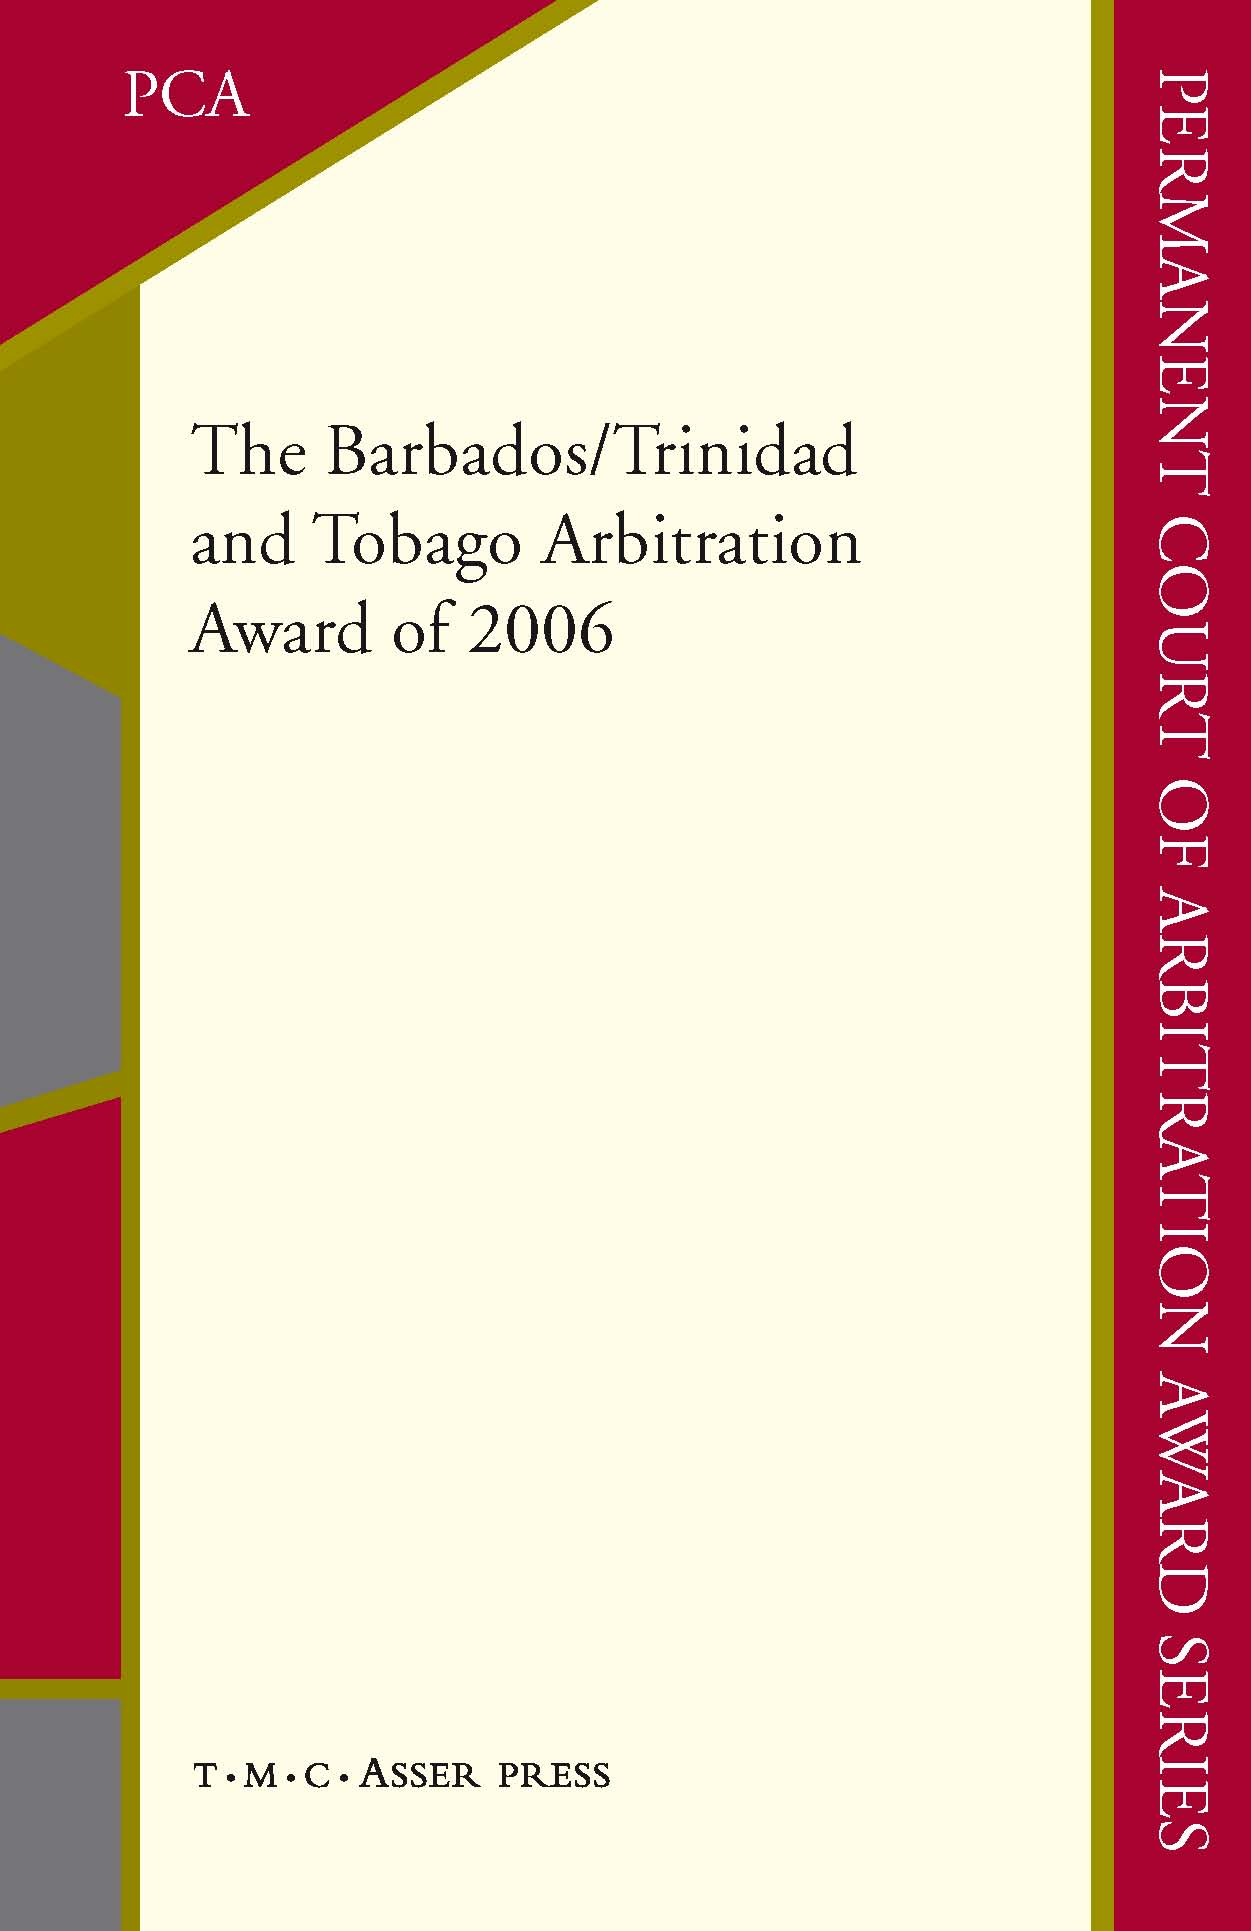 The Barbados/Trinidad and Tobago Arbitration Award of 2006